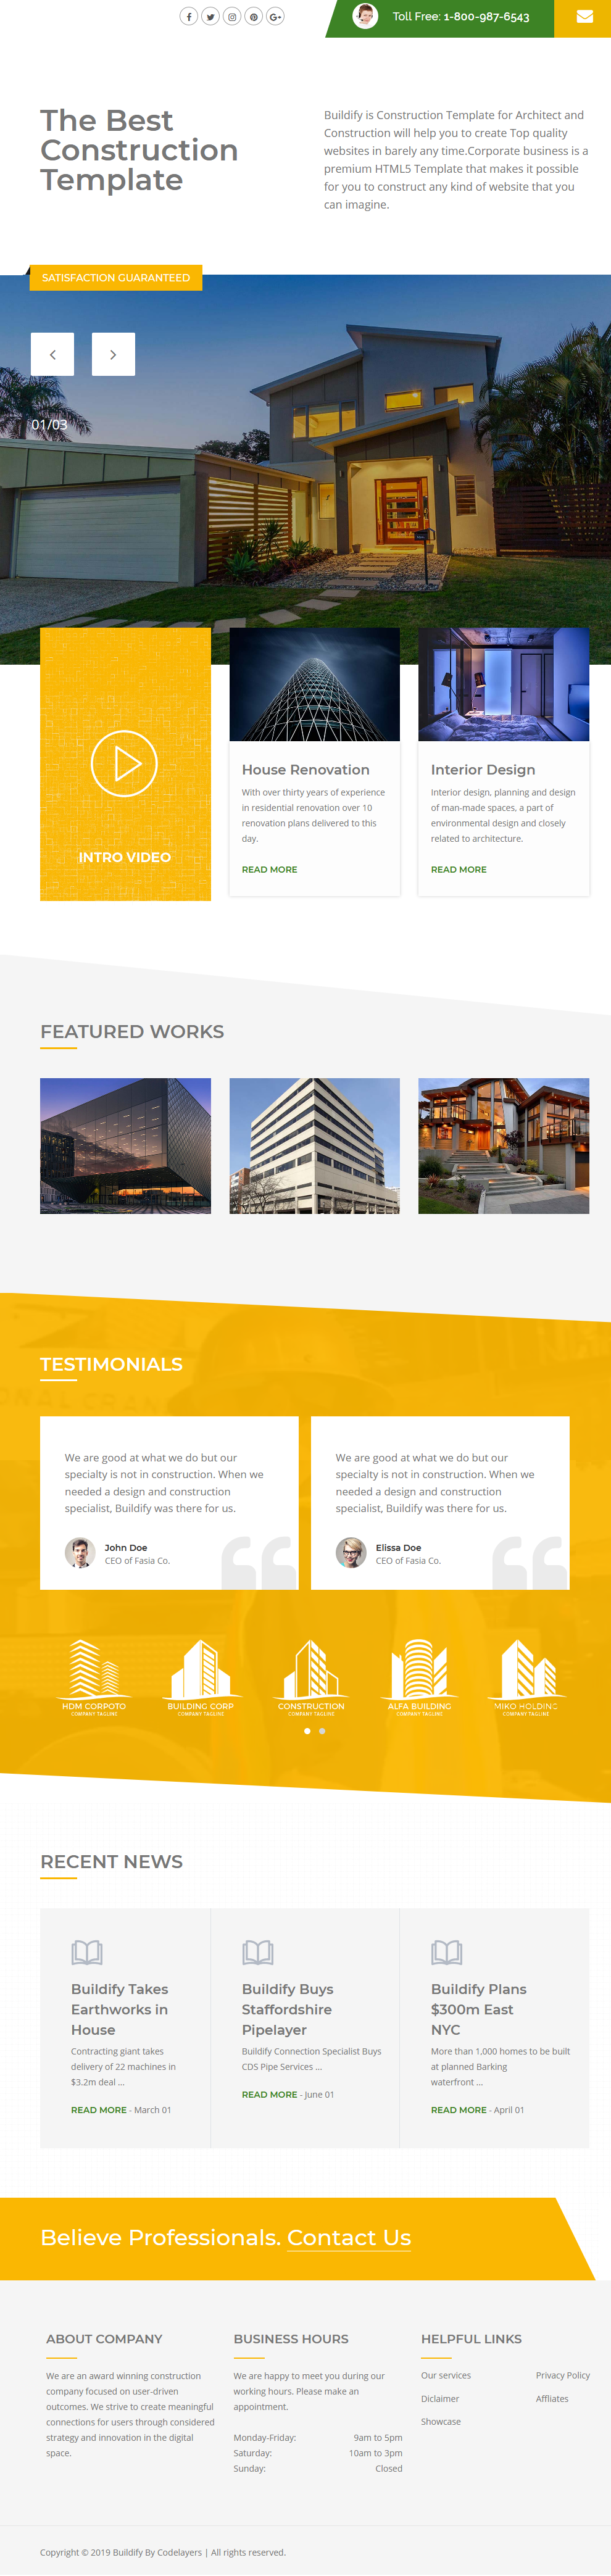 Buildify - Construction / Industry / Factory Joomla Template With Page Builder - 2